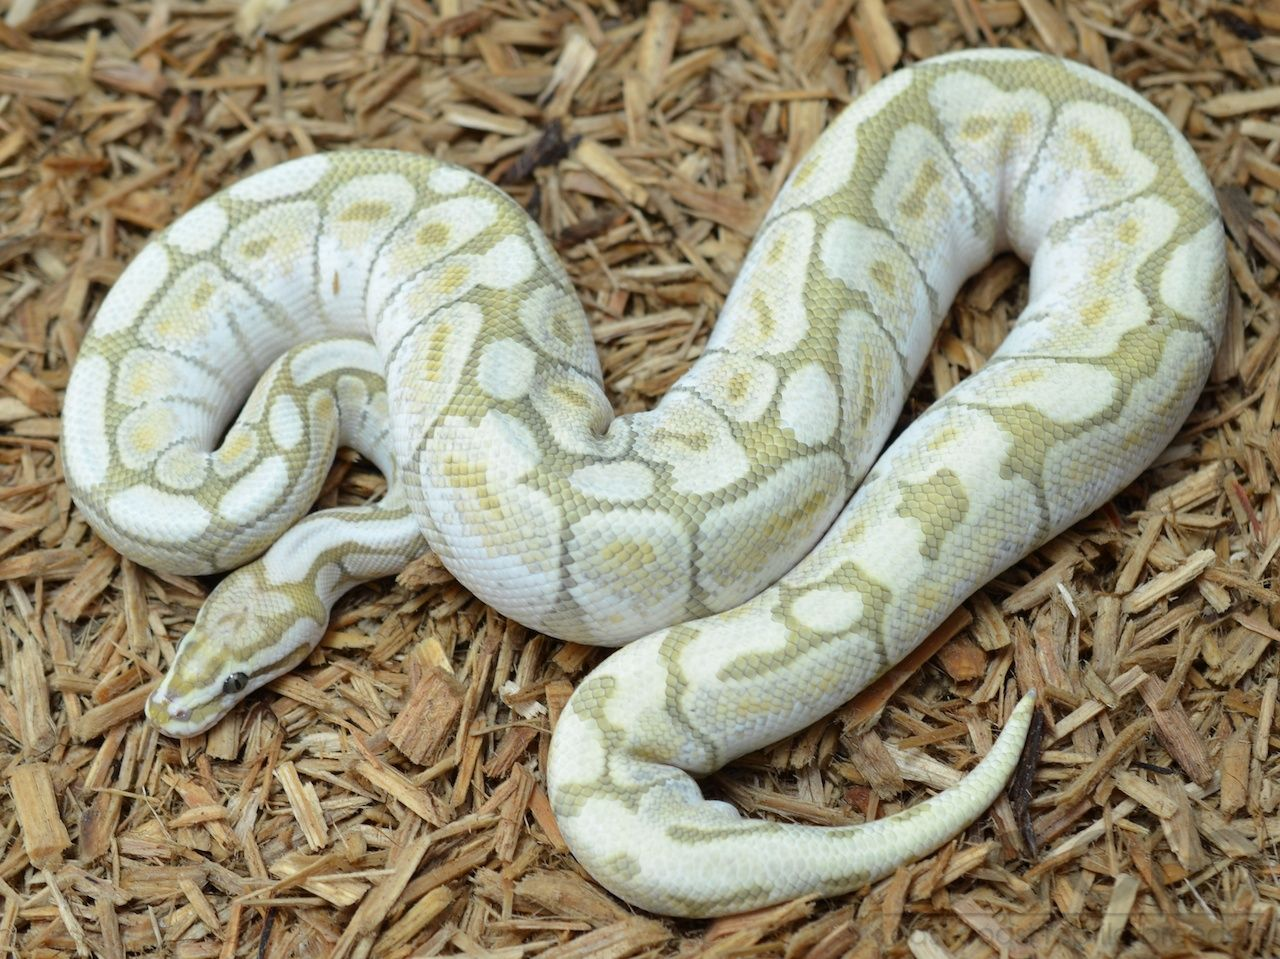 East Coast Reptile Breeders – Ghost Butter Bee Ball Python – Breeder